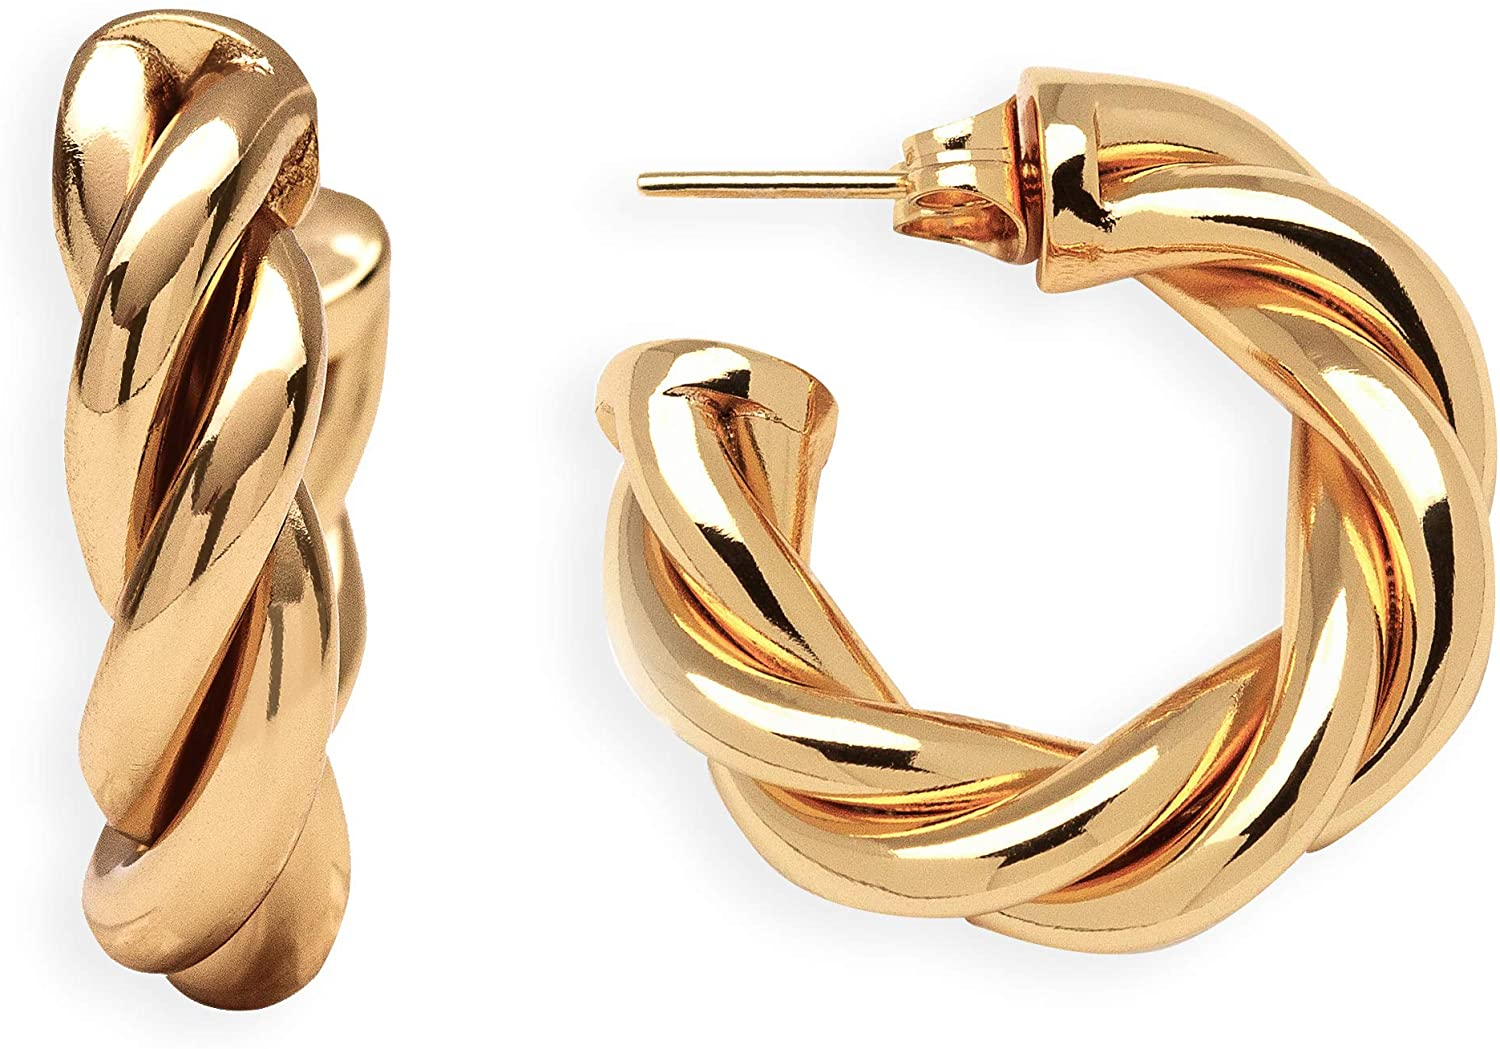 TRIVISO: 18K Gold Plated Rope Hoop Earrings Stud For Women Girls - Thick 1 Inch Chunky Twist Dangle Hoops - Classic Minimal Yellow Gold Plated Jewelry